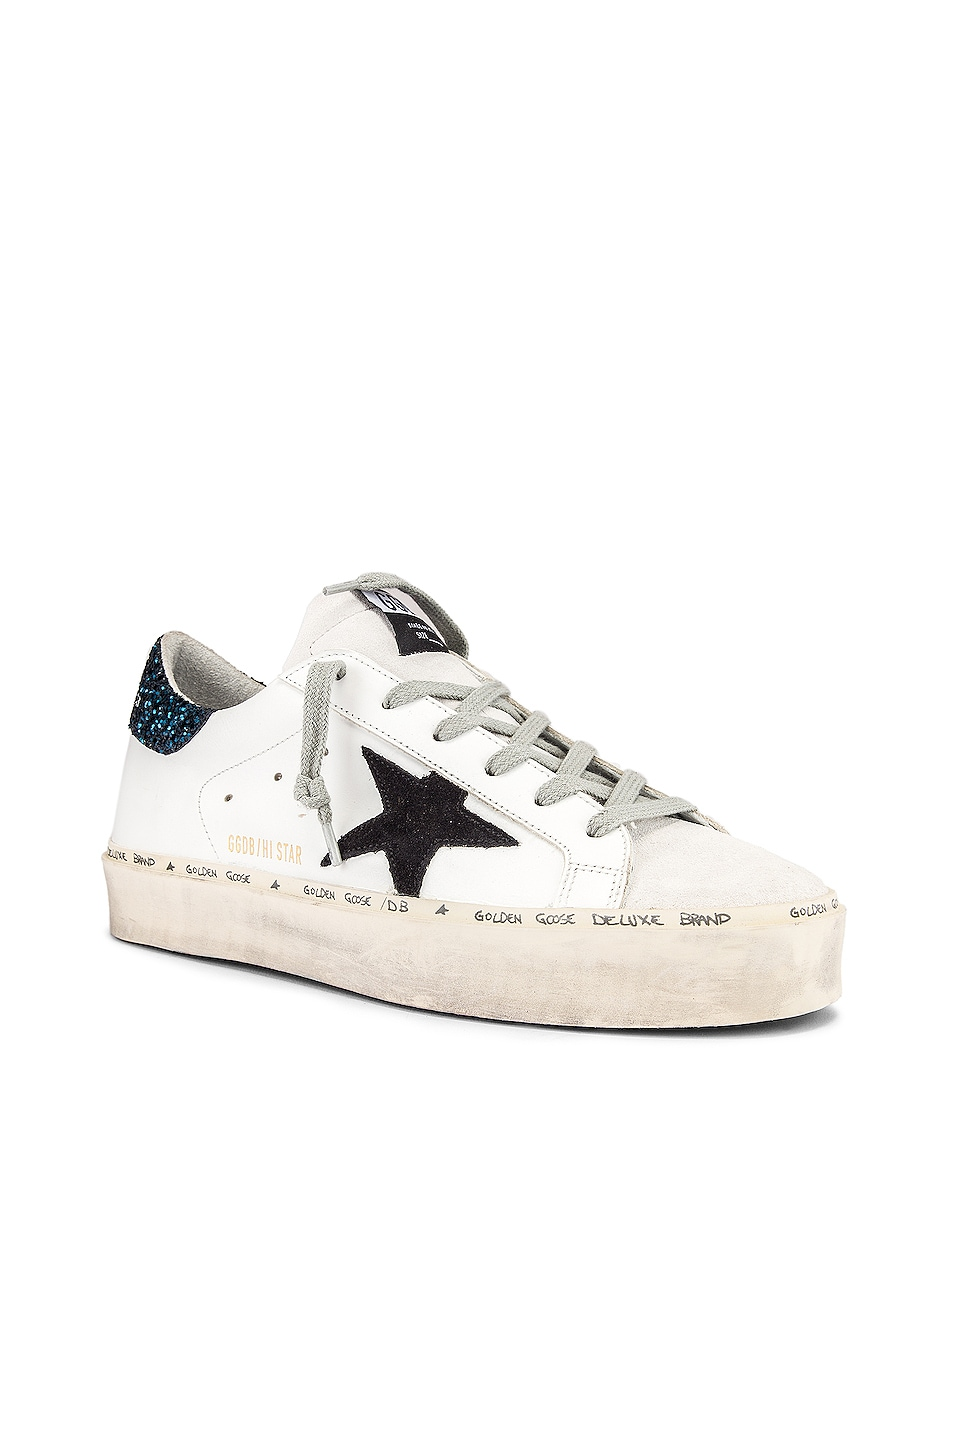 Image 2 of Golden Goose Hi Star Sneaker in White, Black & Blue Glitter